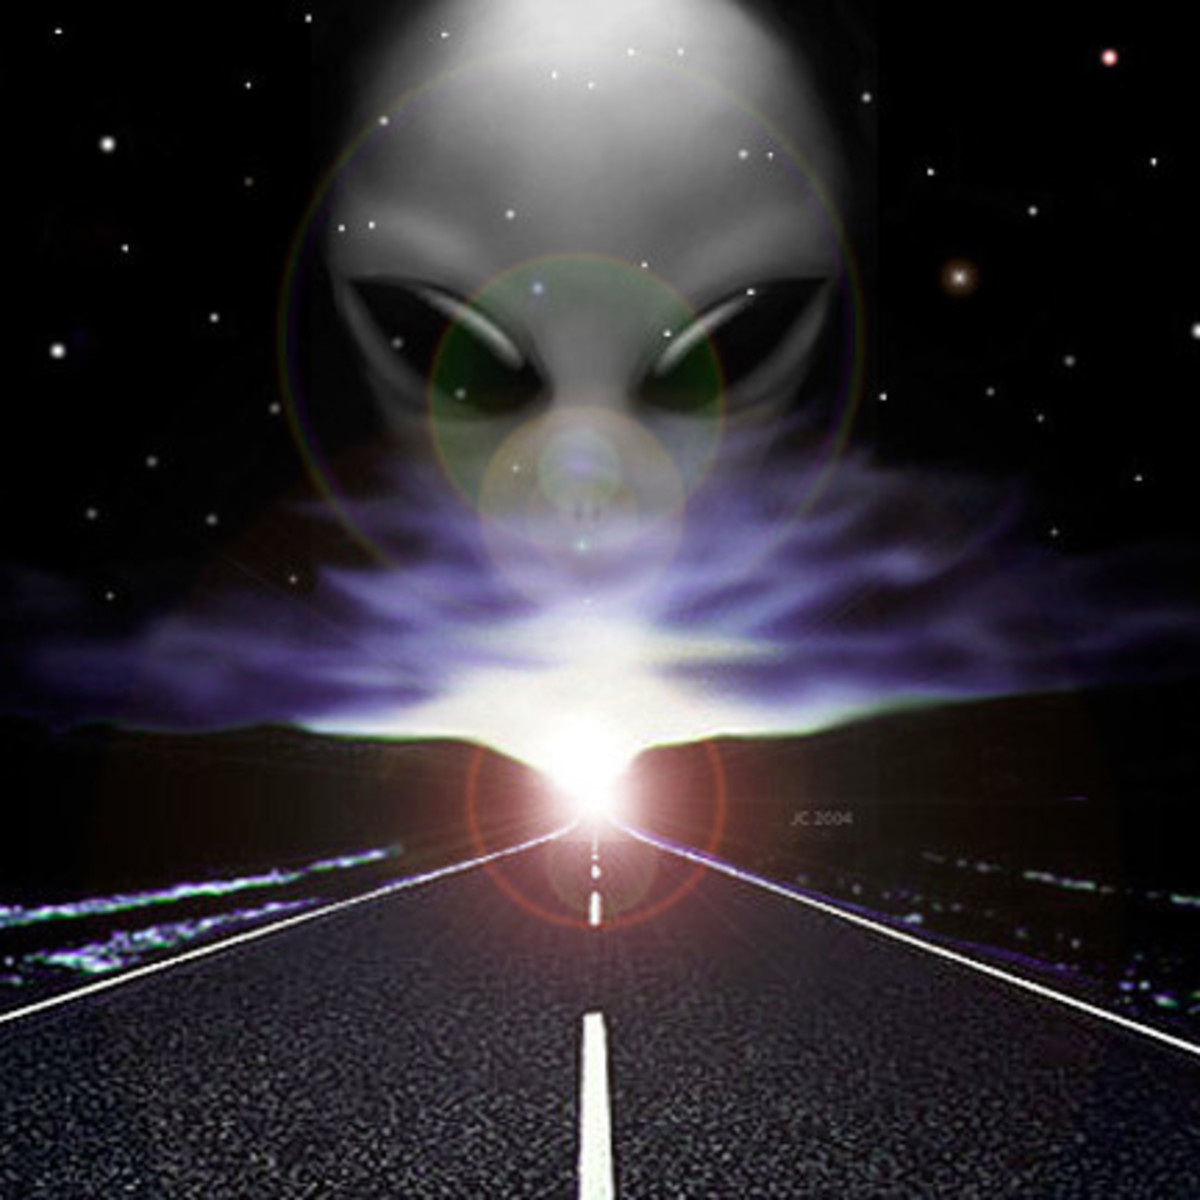 UFO Videos, UFO Photos And All Kinds Of Great Information About UFO's.